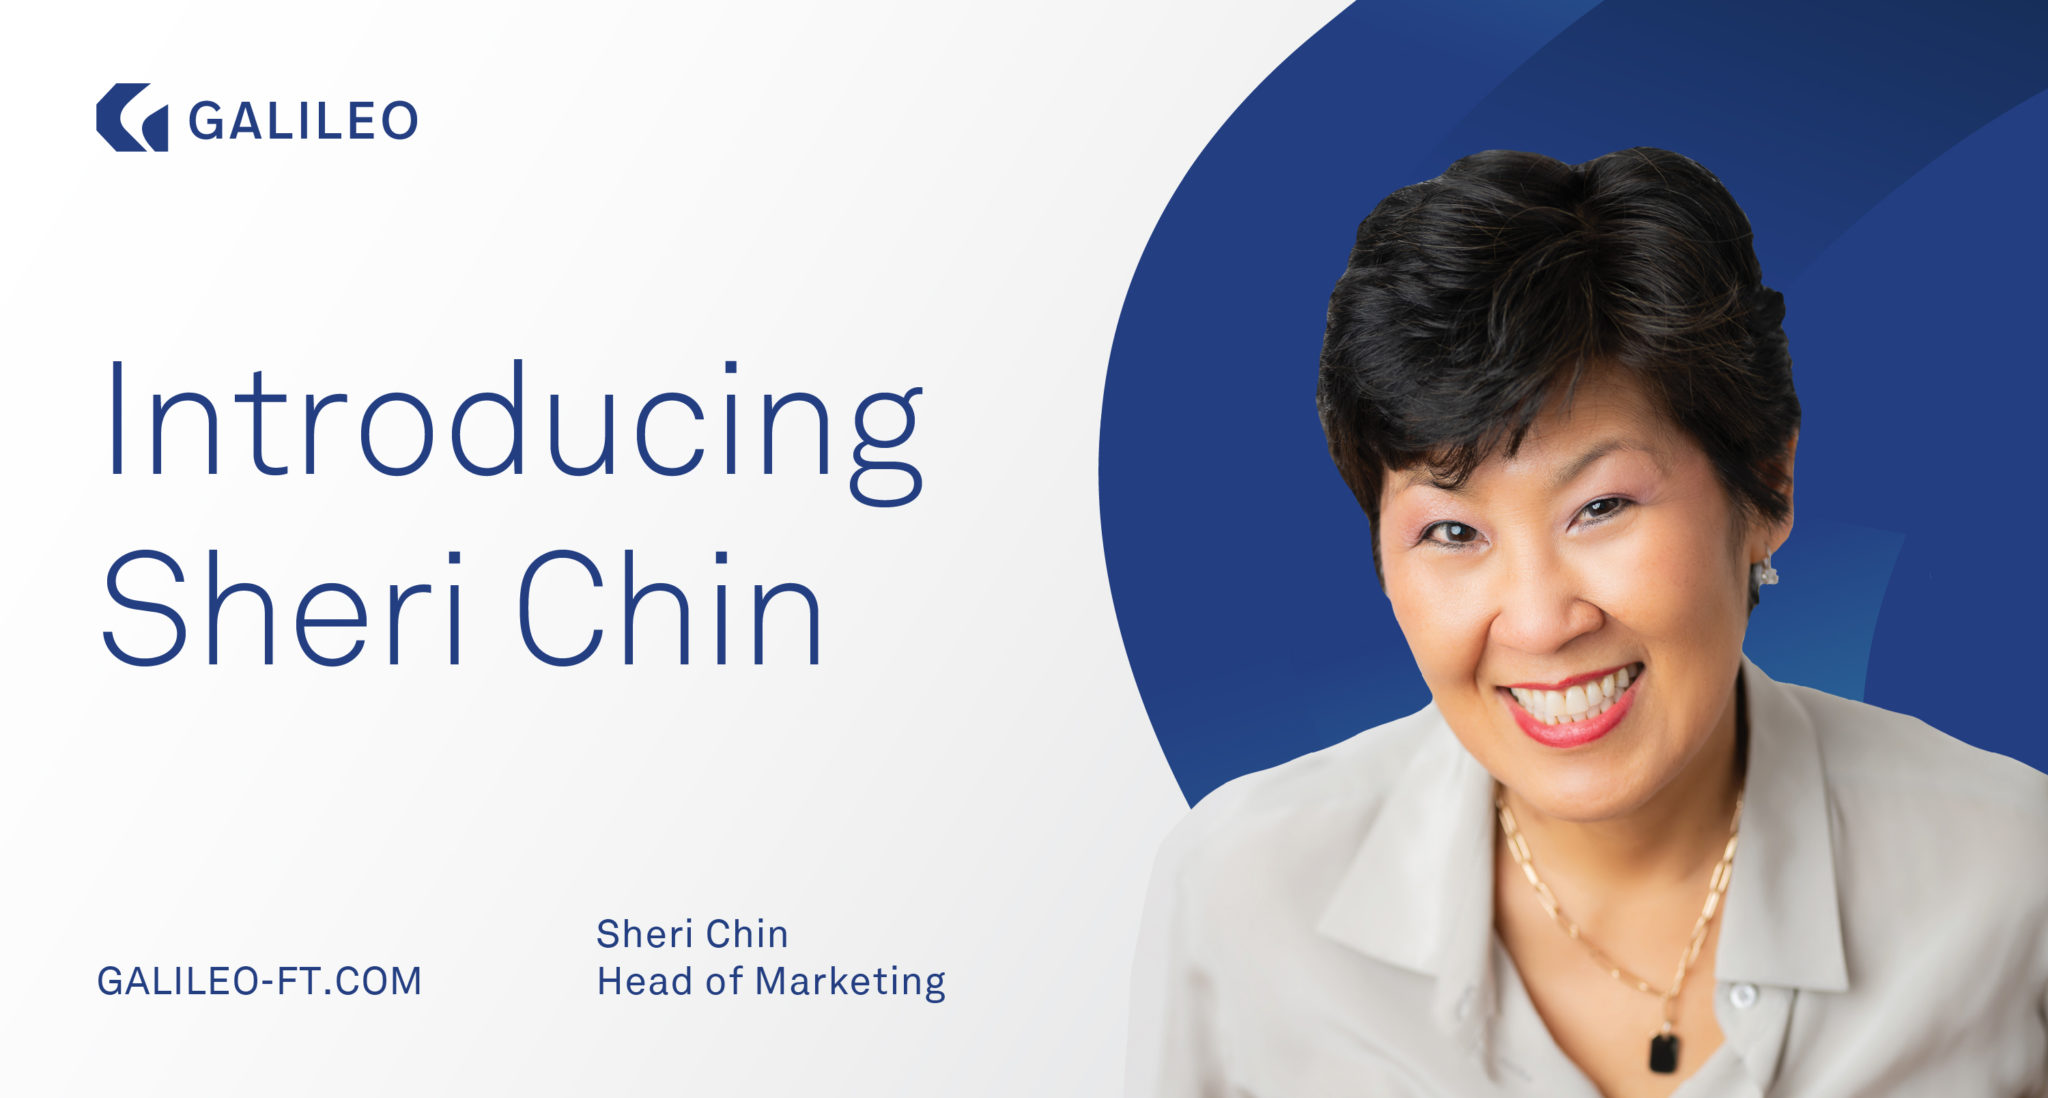 Photo of Sheri Chin